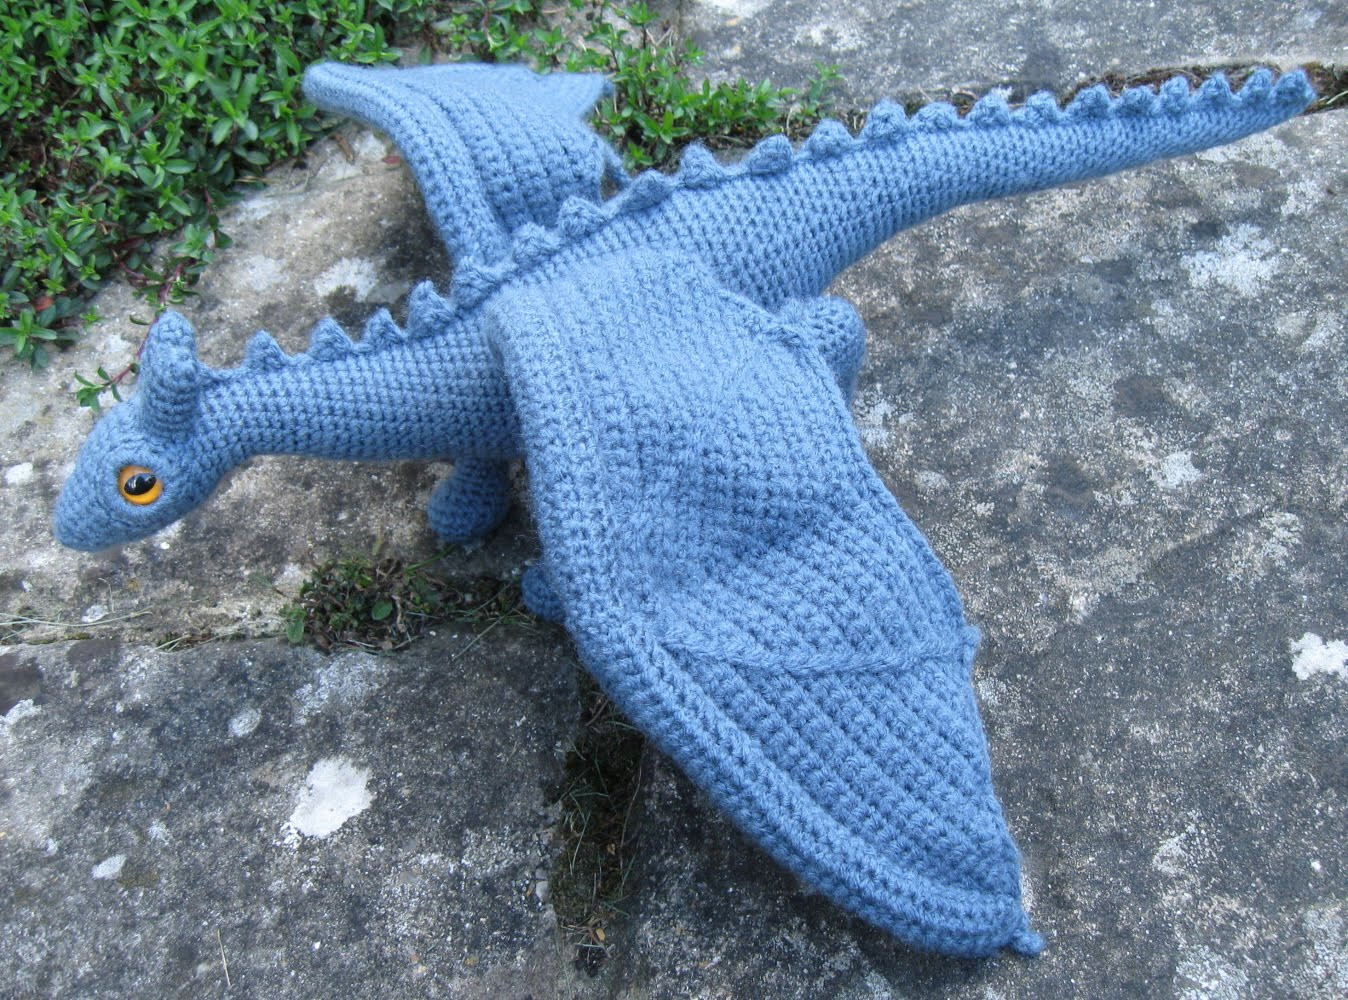 Free Crochet Dragon Pattern Awesome Lucyravenscar Crochet Creatures Dragonet Pattern Of Amazing 50 Images Free Crochet Dragon Pattern